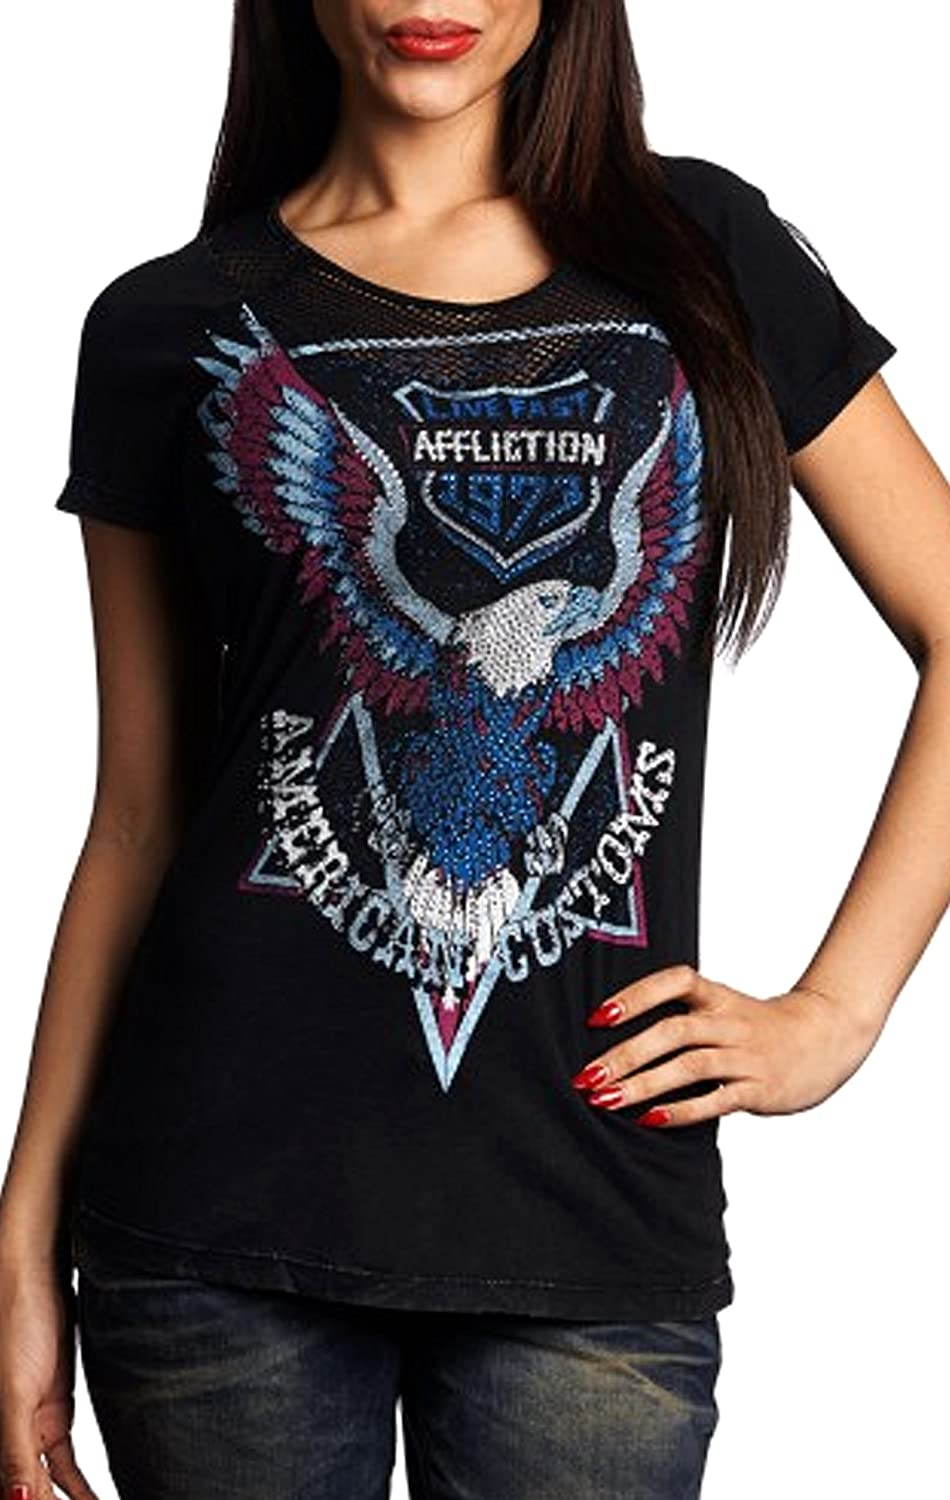 Affliction High Beams Short Sleeve Fashion Graphic Tshirt Top for Women